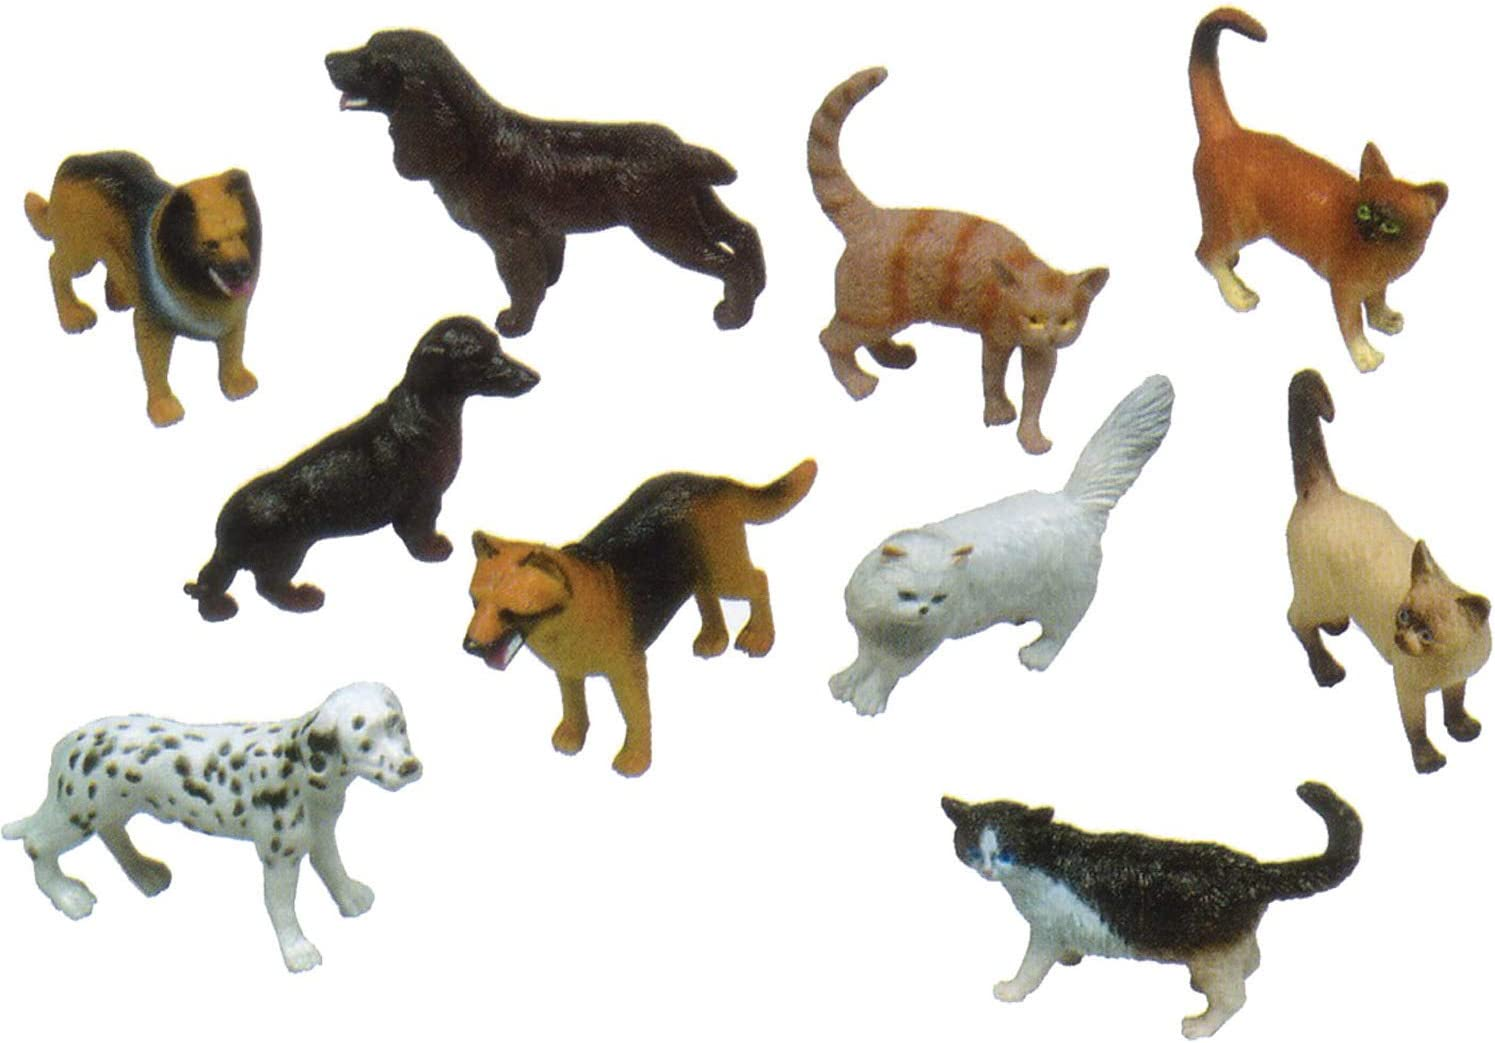 Simulation Mini Pets Figure Model Toy Cat Dog Figurines Playset Kids Gift